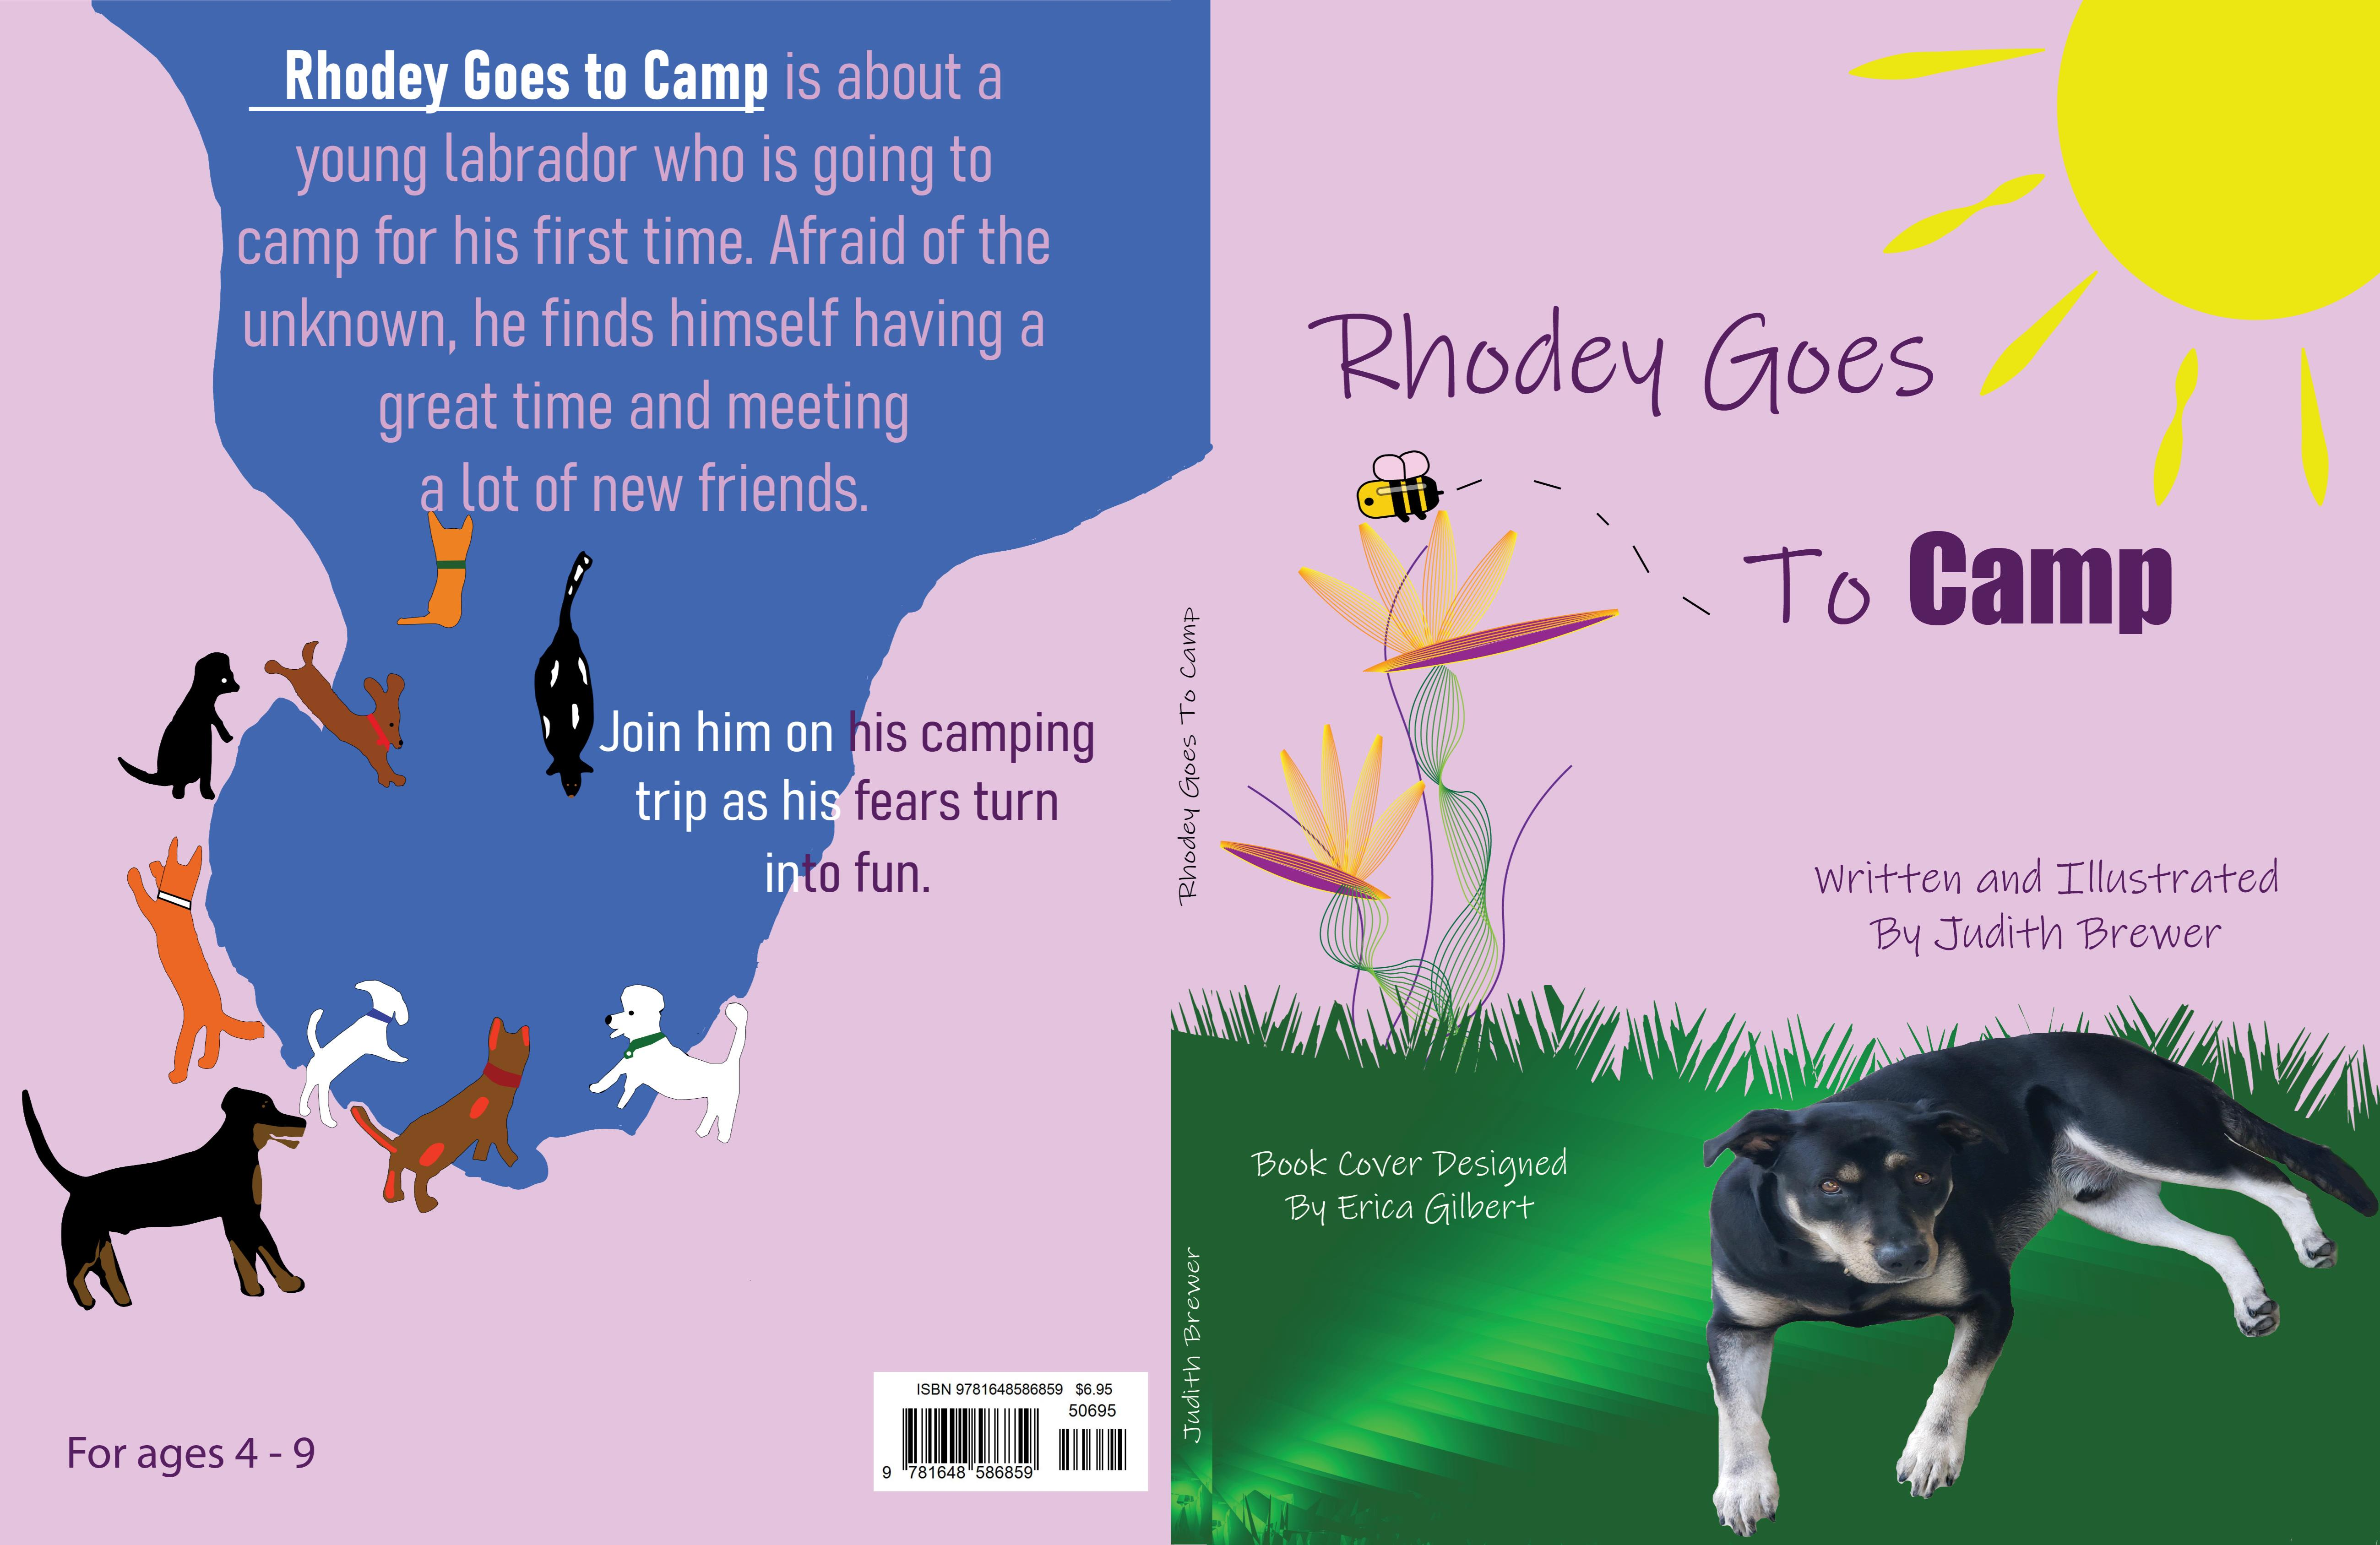 Rhodey Goes to Camp cover image